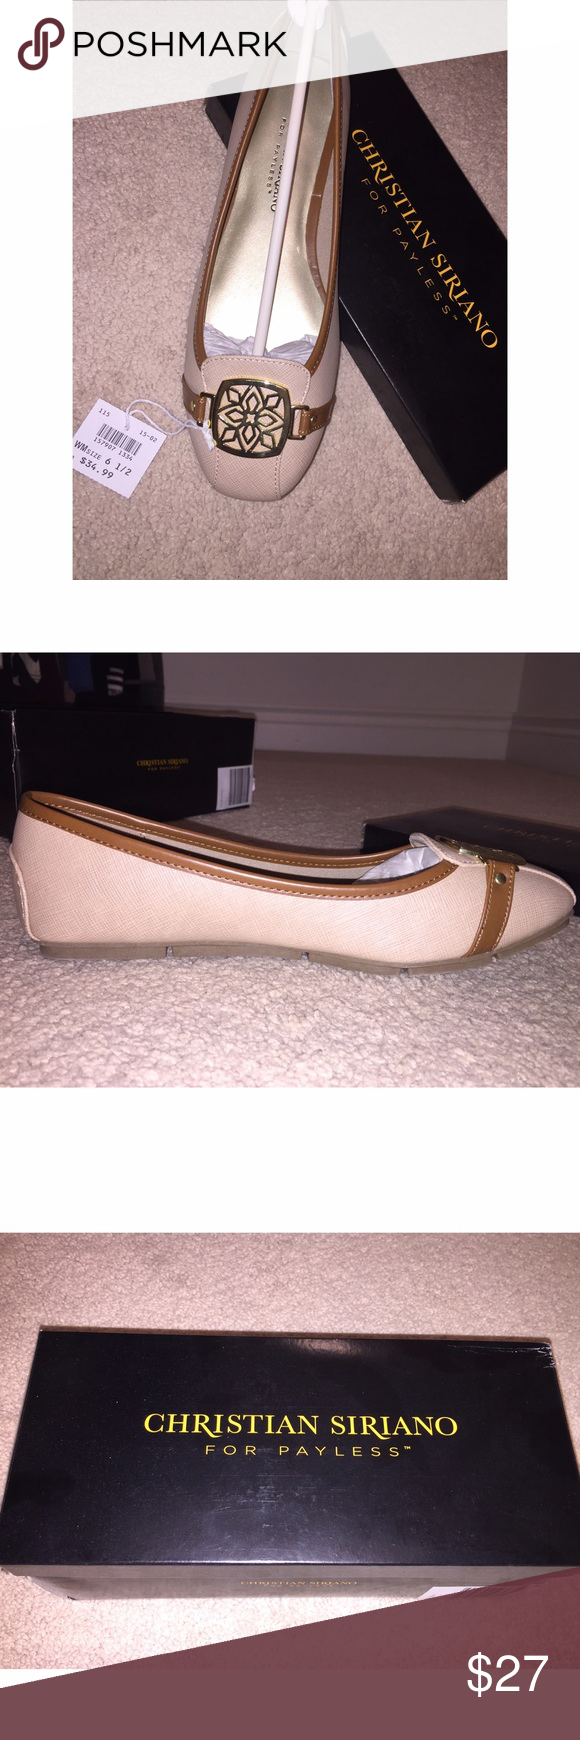 Christian Siriano flat Beige/ tan flat, never worn. Will ship in the original box, no trades. Smoke& animal free. Christian Siriano Shoes Flats & Loafers